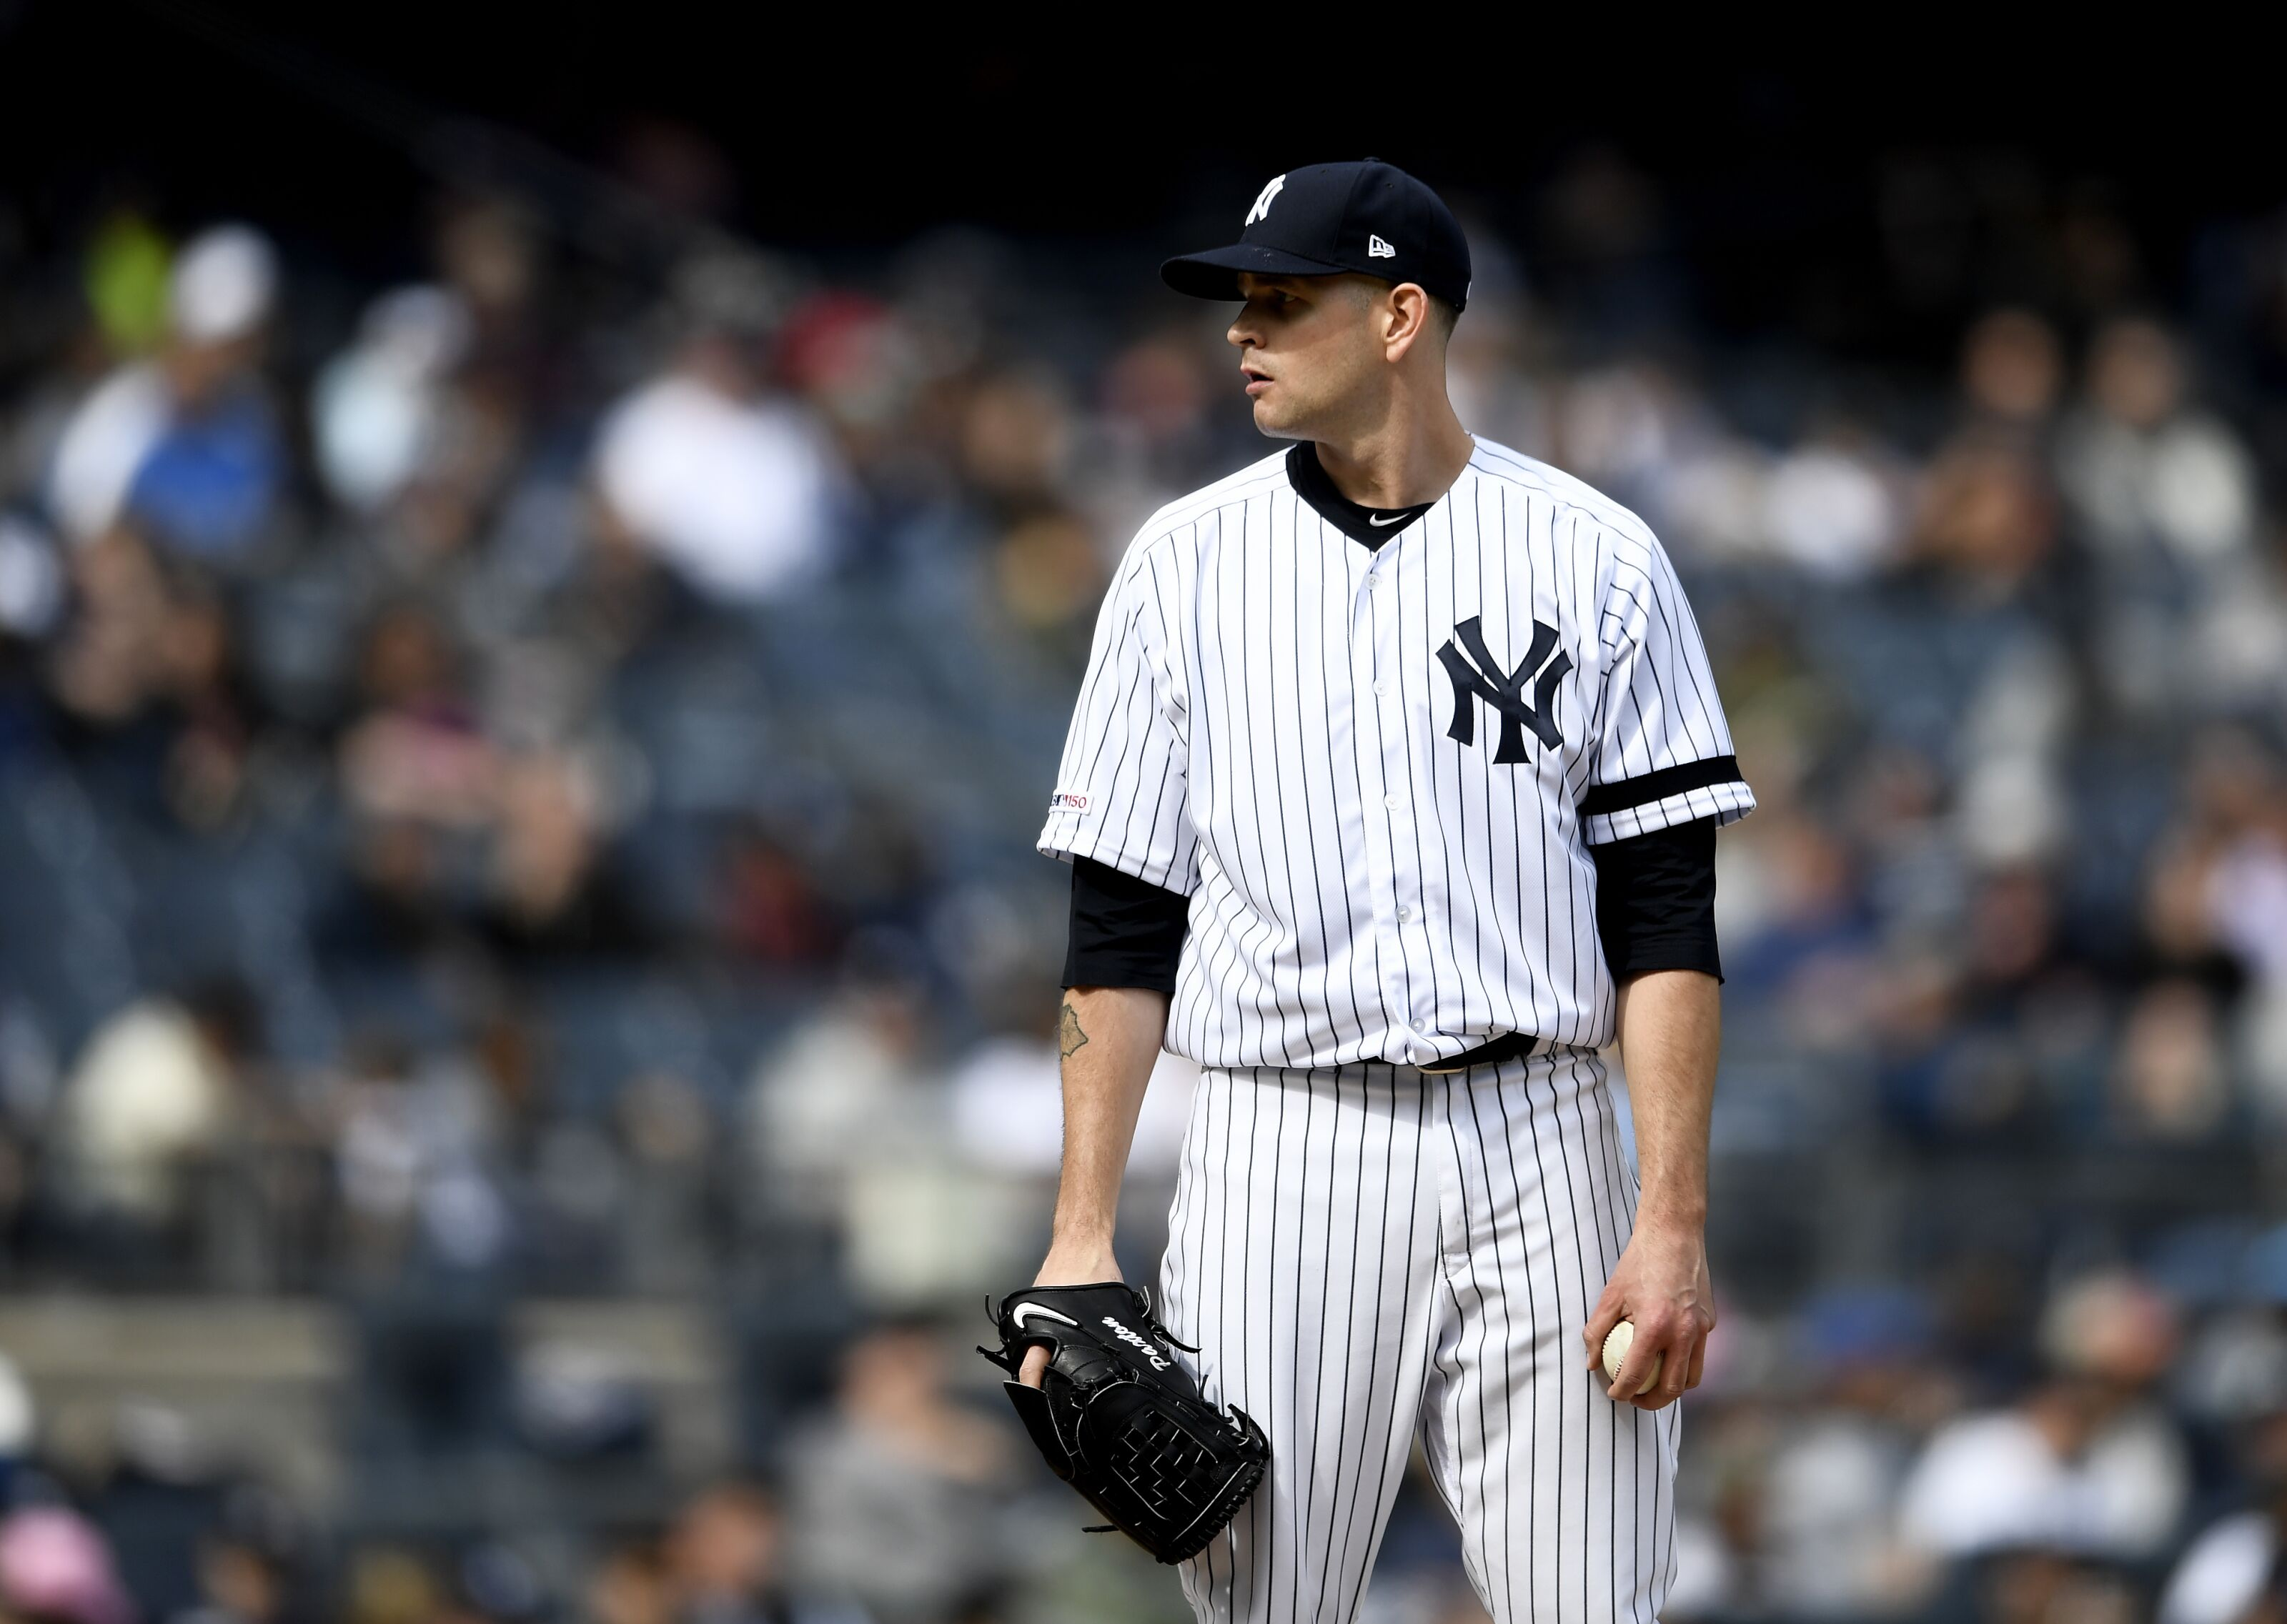 Subway Series 2019: The Mets and Yankees face off in a 2 game series